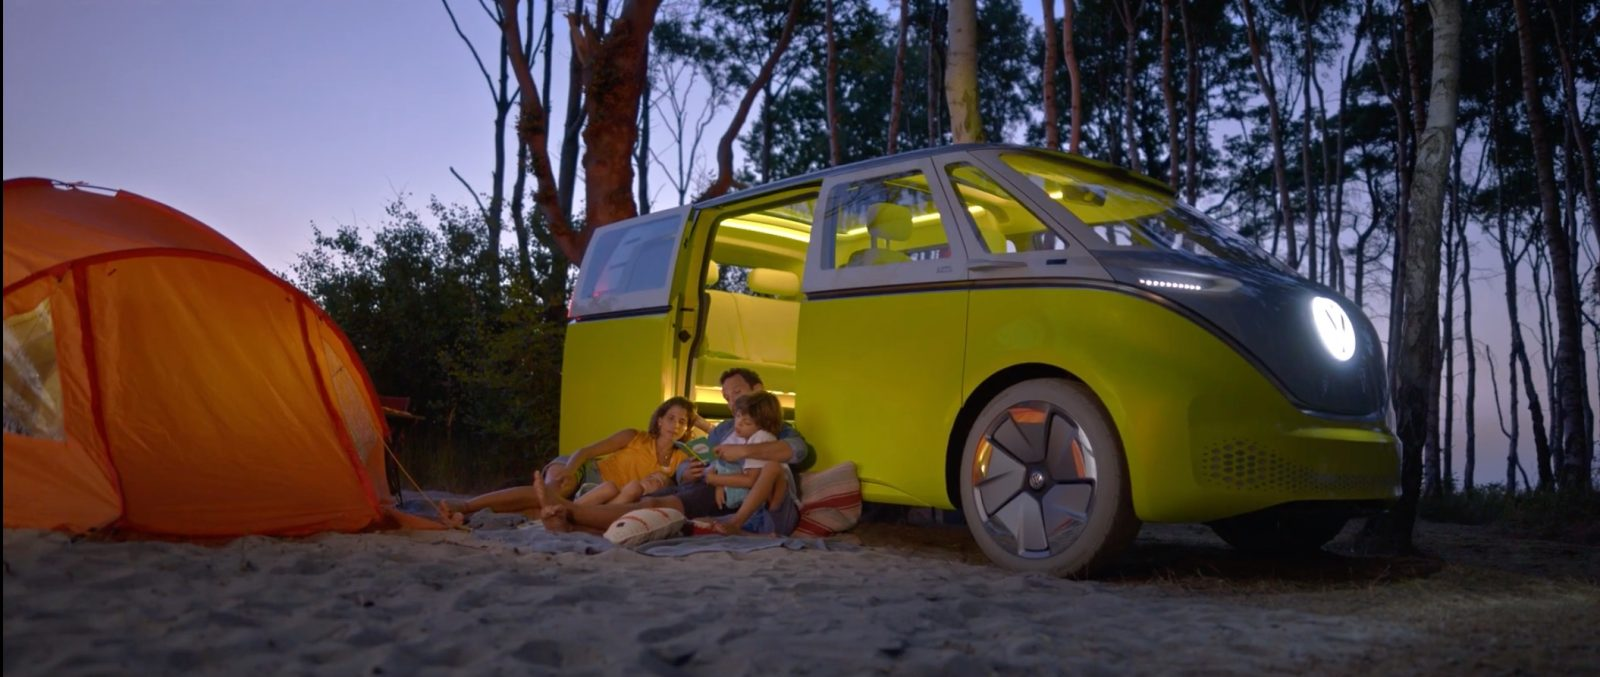 Vw Teases Electric And Autonomous Van Life With New Id Buzz Microbus Video